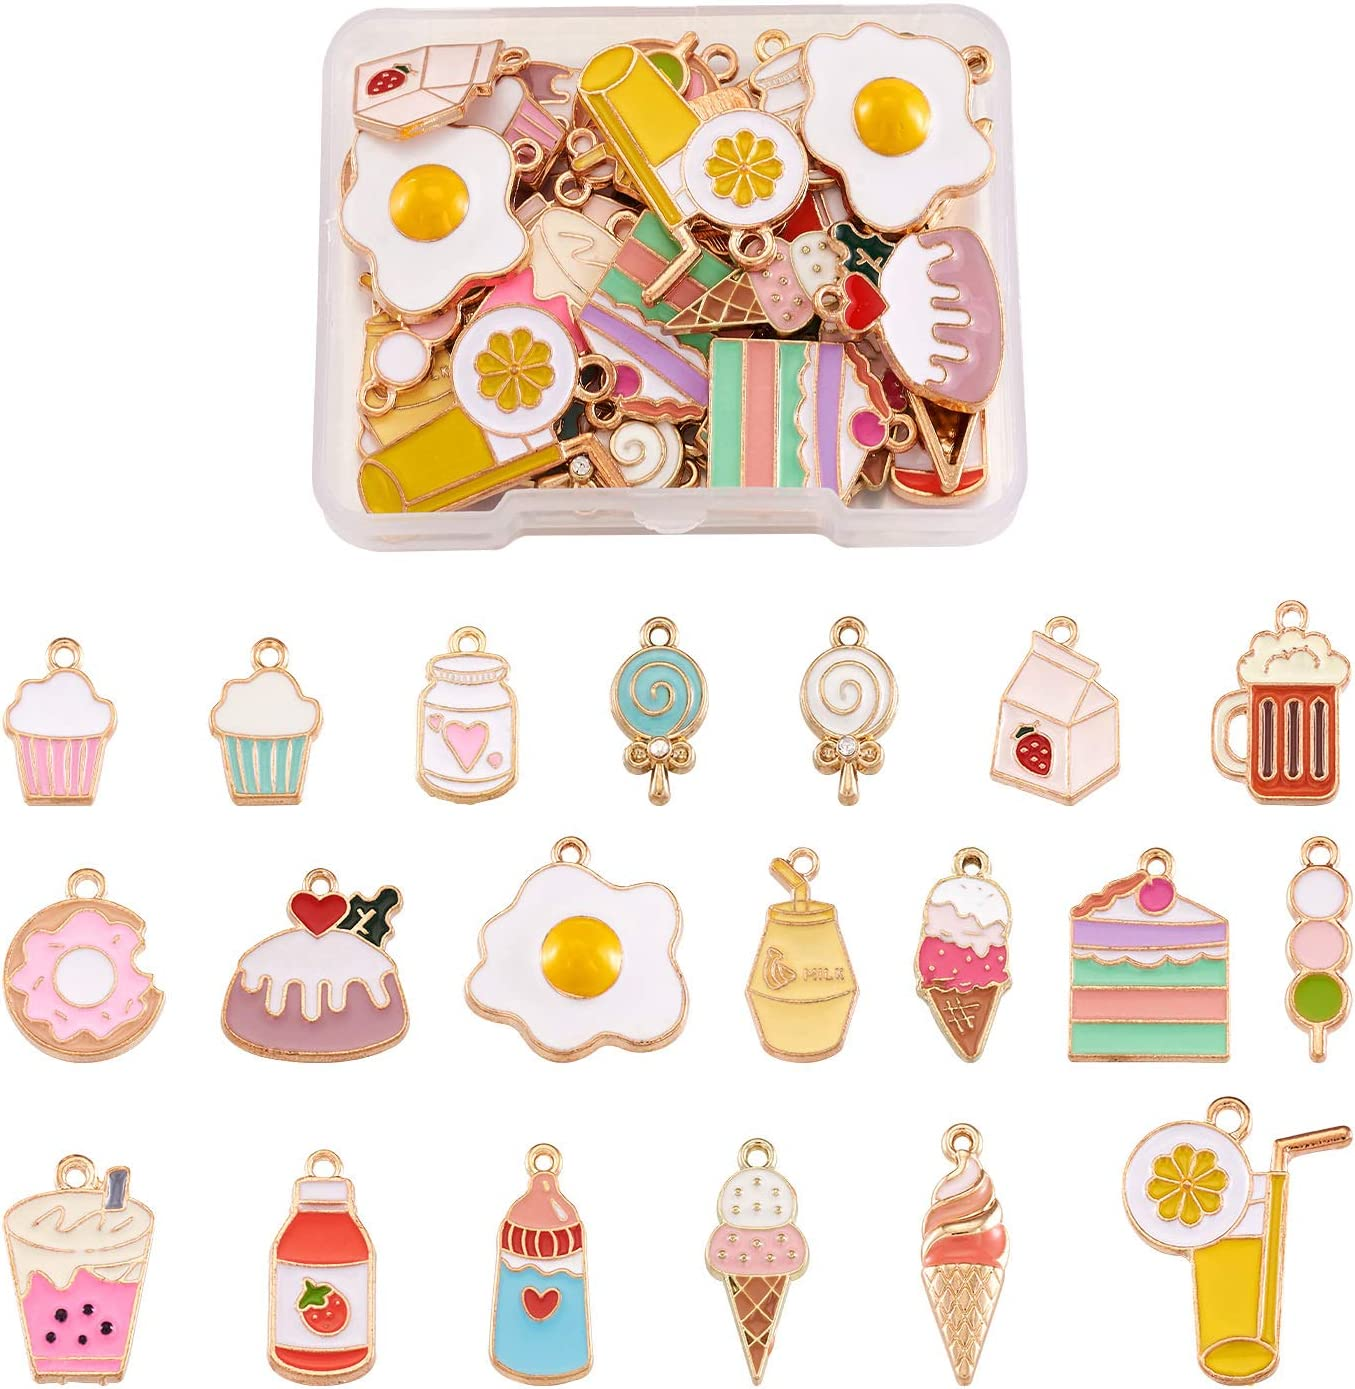 Craftdady 40pcs Food Theme Enamel Pendant 20 Styles Light Gold Plated Donut Lollipop Ice Cream Cup Cake Bubble Tea Milk Dangle Charm for Earring Bracelet Necklace Jewelry Making